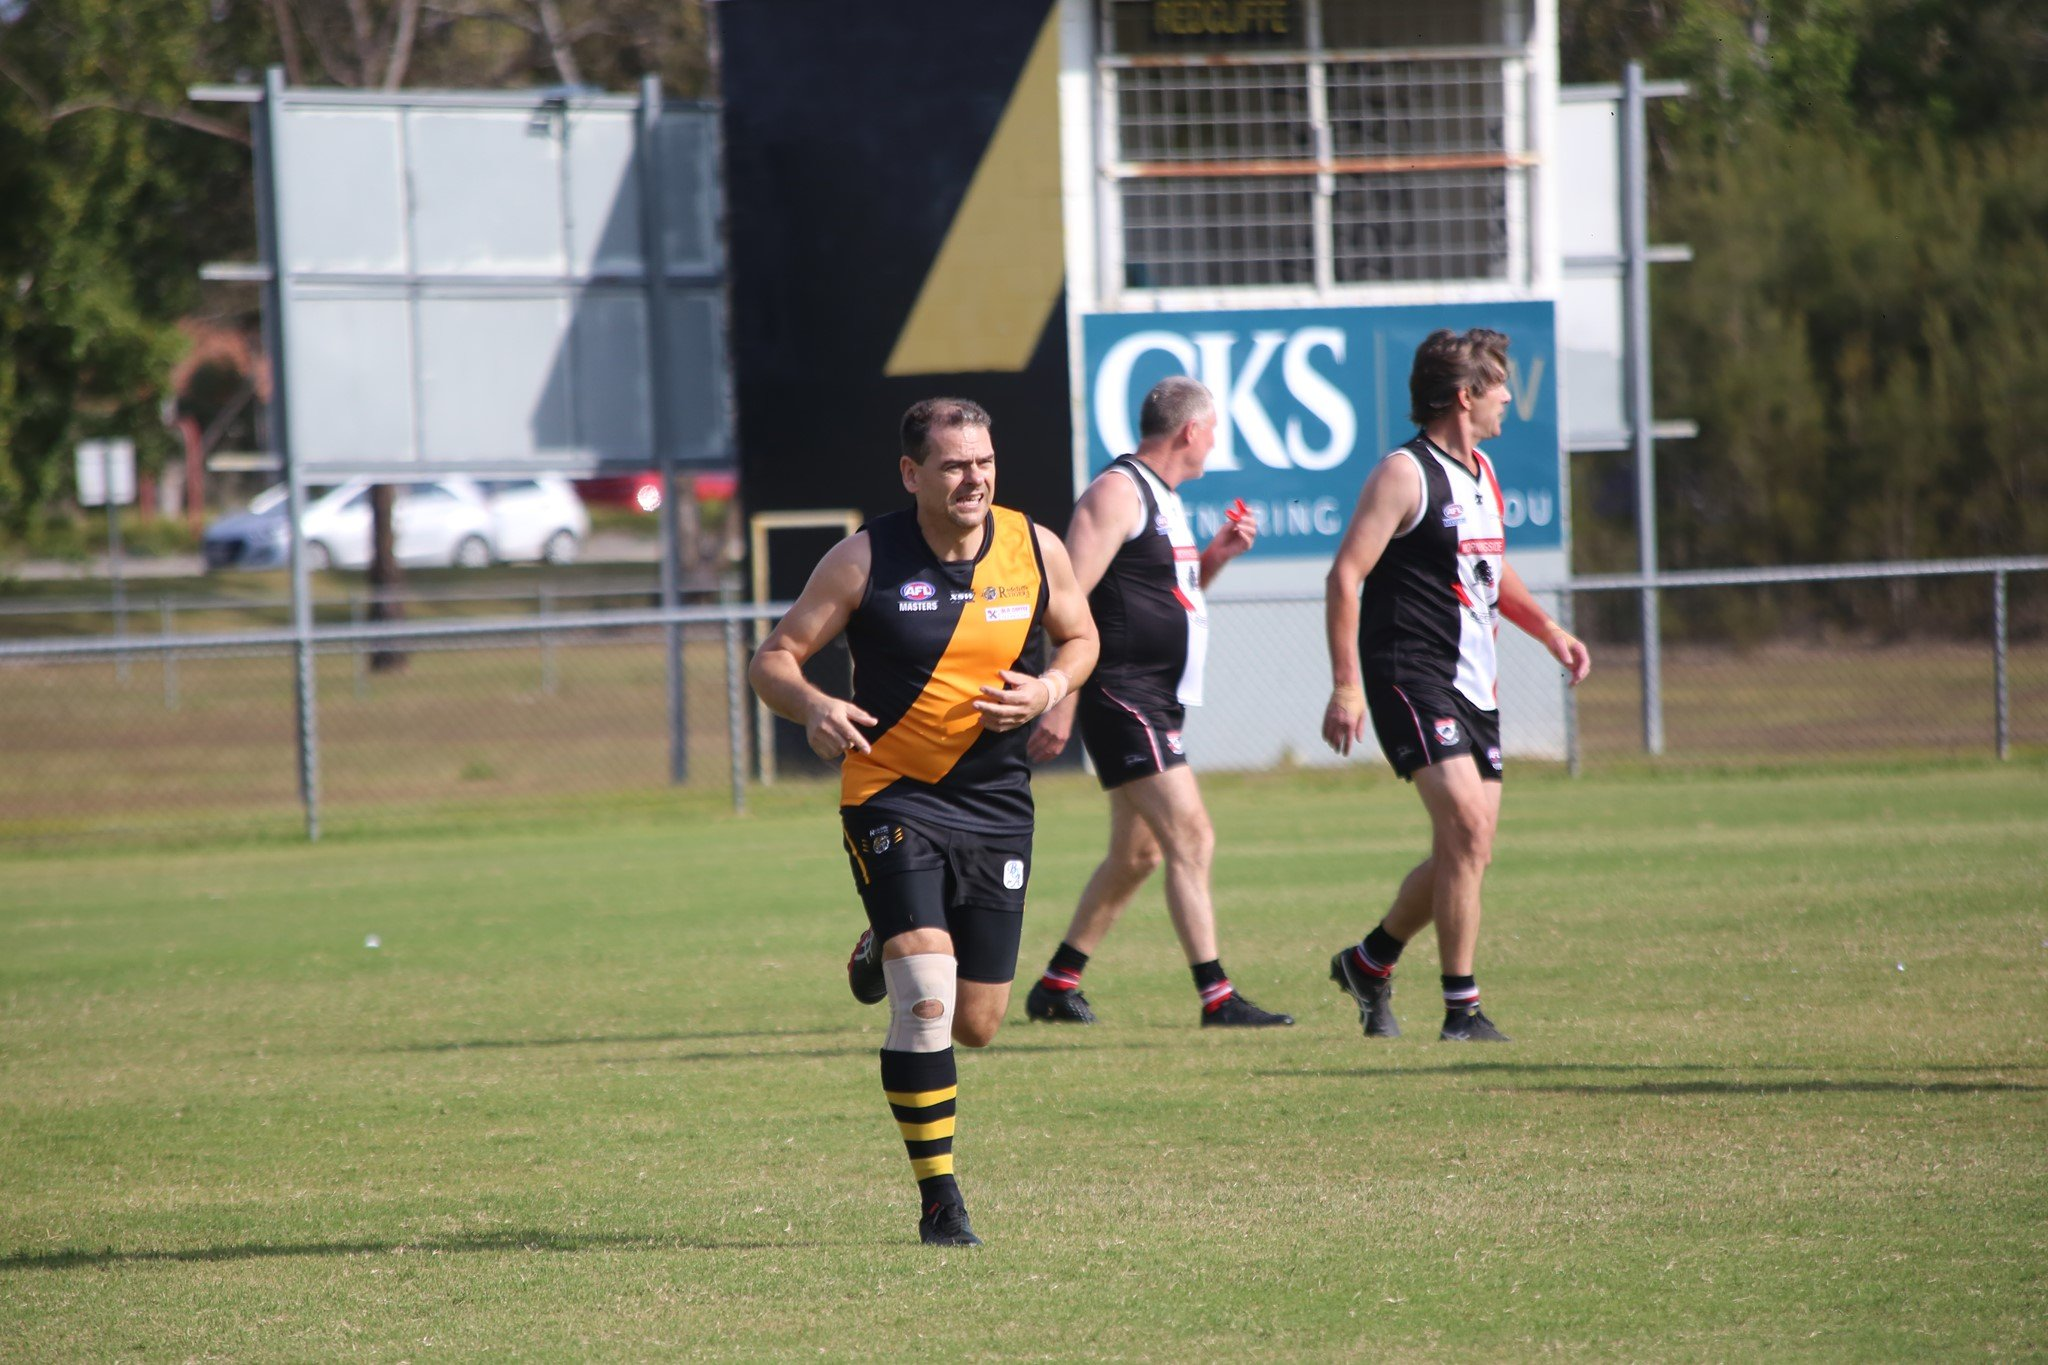 Redcliffe Tigers Senior kicking